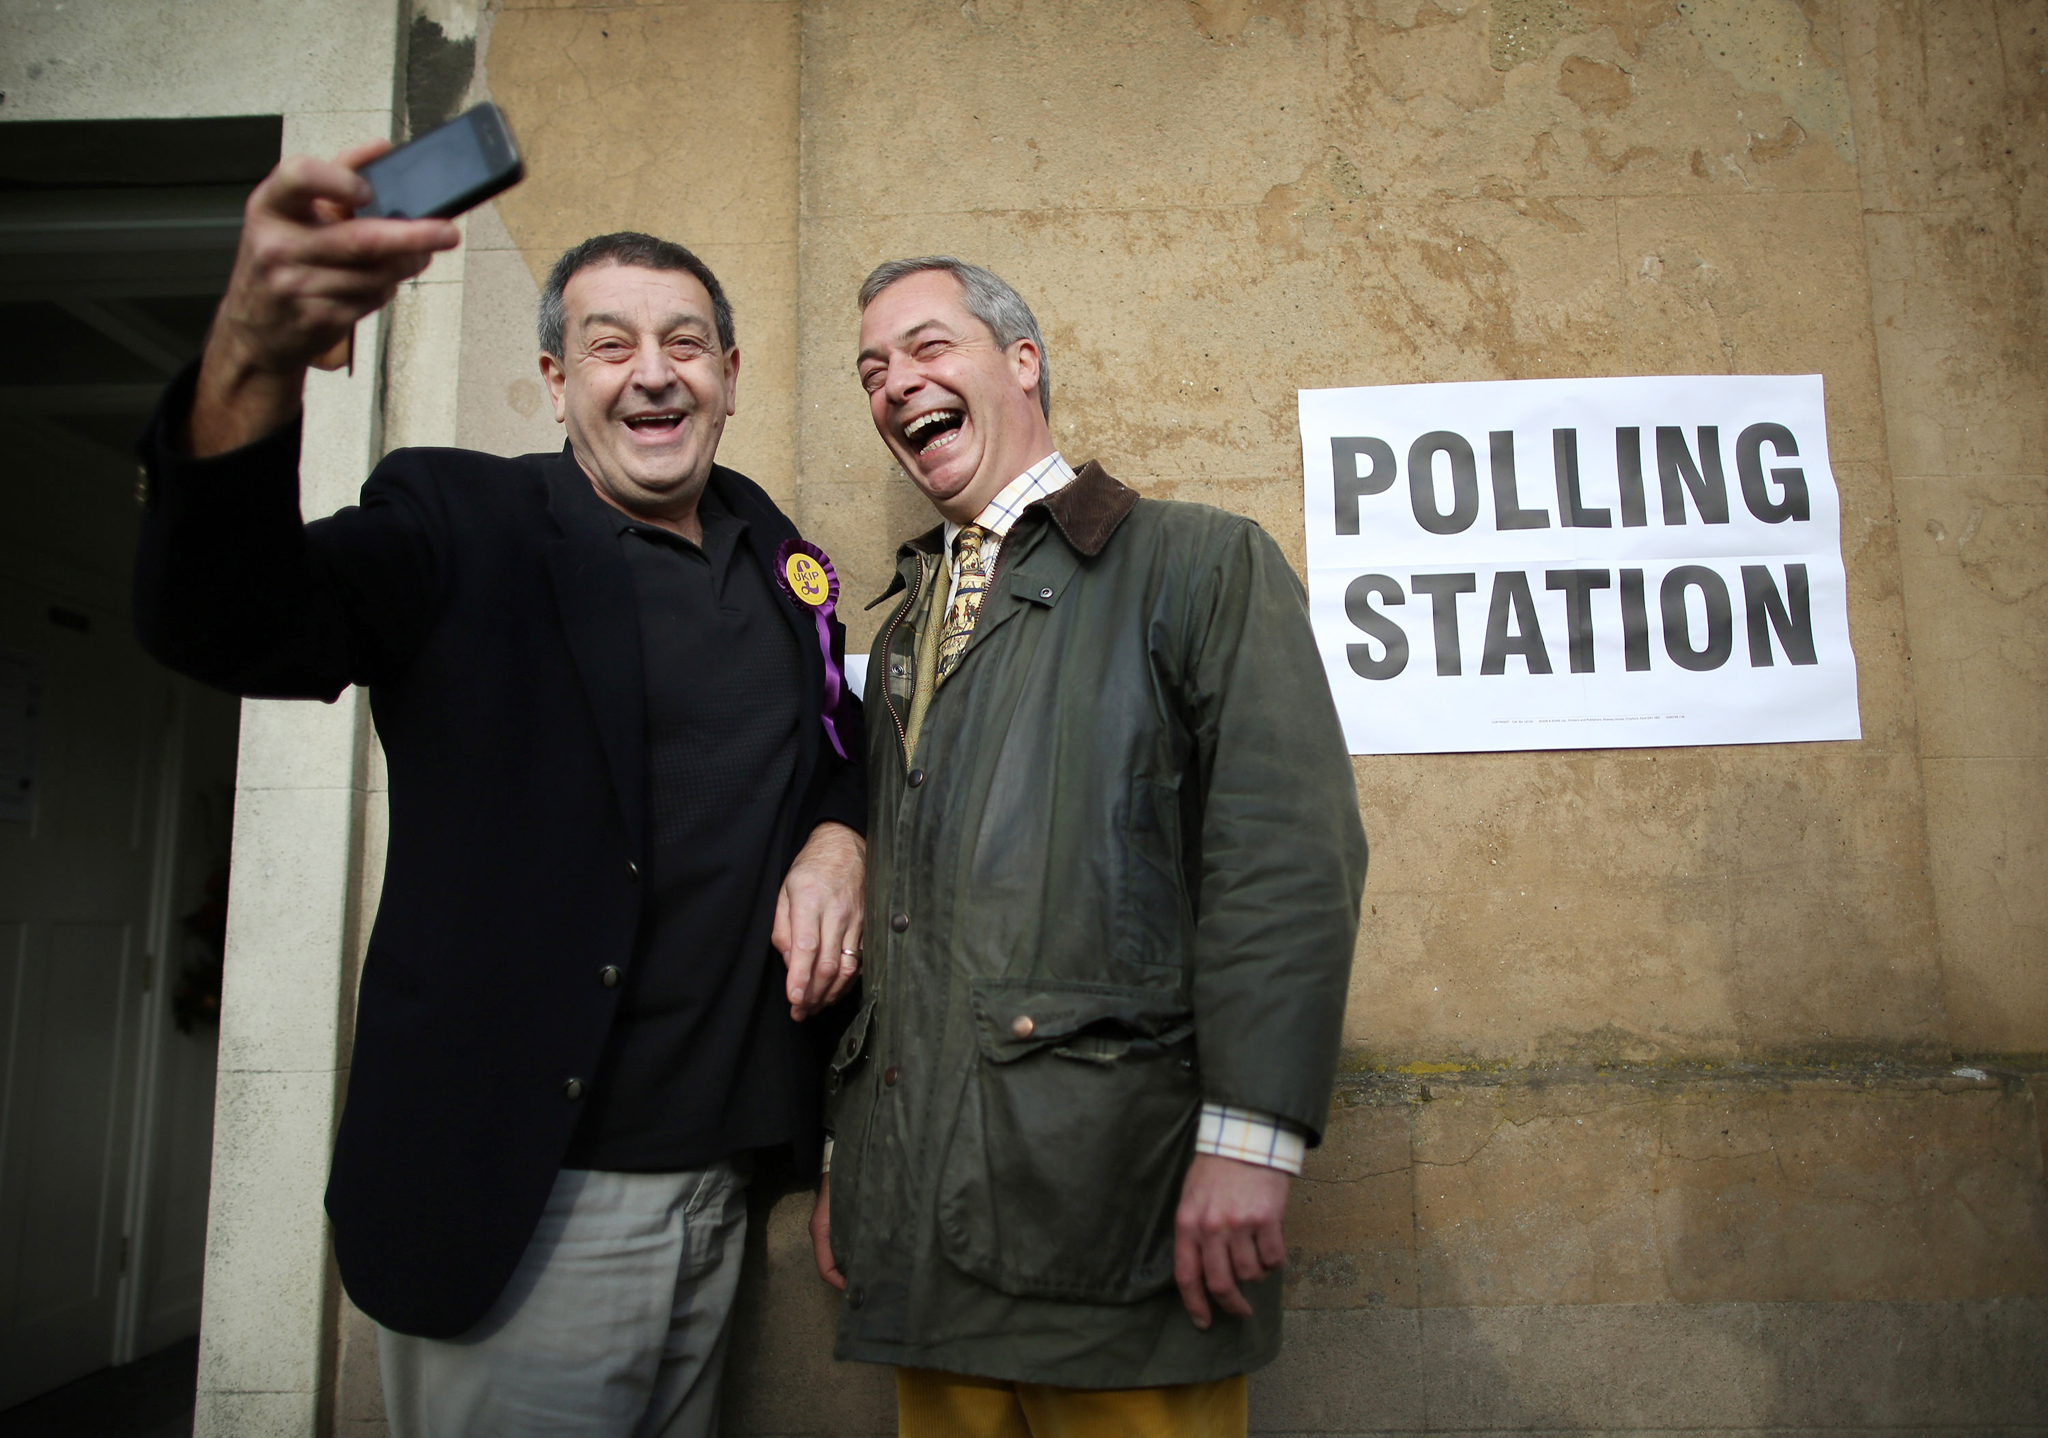 Rochester and Strood Parliamentary By-Election...ROCHESTER, ENGLAND - NOVEMBER 20:  United Kingdom Independence Party (UKIP) leader Nigel Farage (R) poses for a selfie photo with party worker Lee Jarvis at a polling station on November 20, 2014 in Rochester, England. Polls have opened and voting is taking place in the Rochester and Strood parliamentary by-election.  (Photo by Peter Macdiarmid/Getty Images)